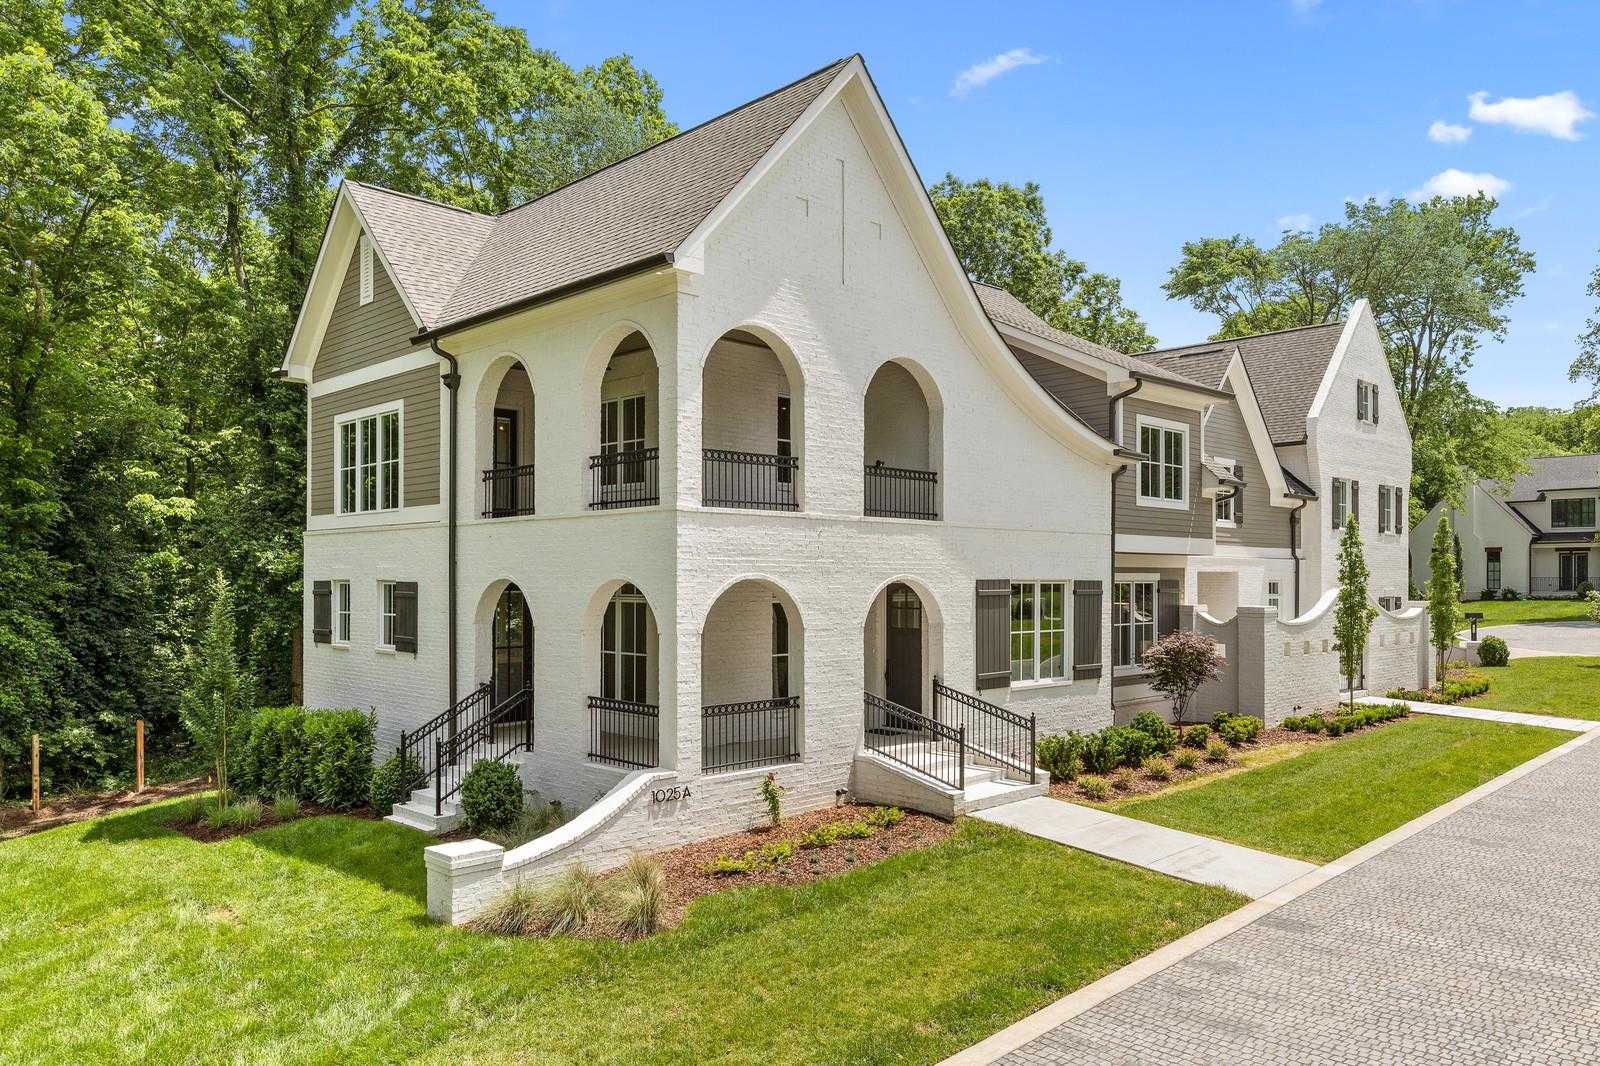 $2,244,980 - 6Br/6Ba -  for Sale in Battery Cove, Nashville